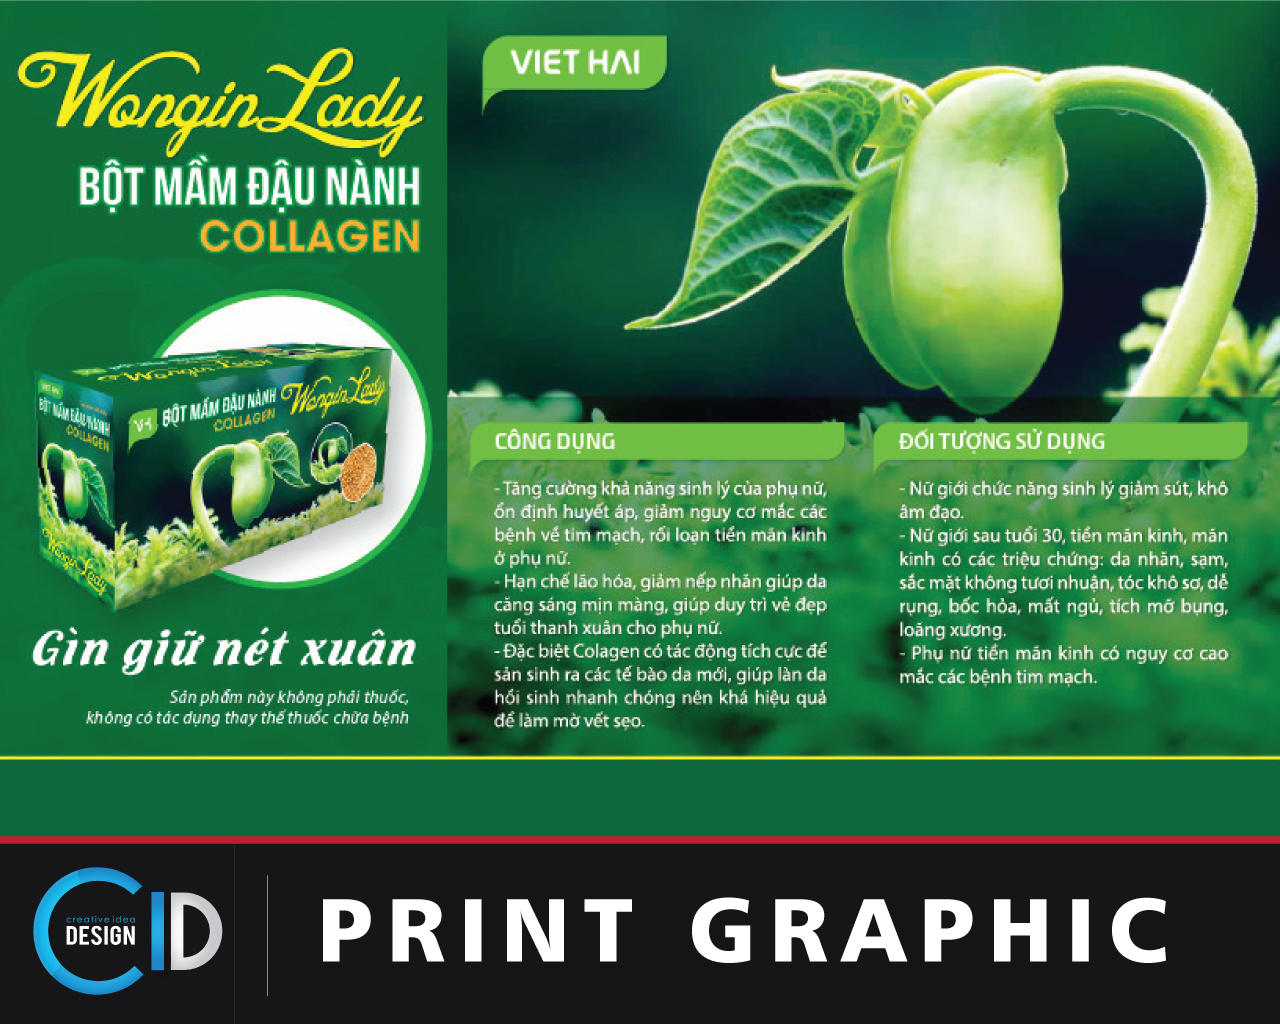 Creative Print Ads Design by Thanhsugar - 95980